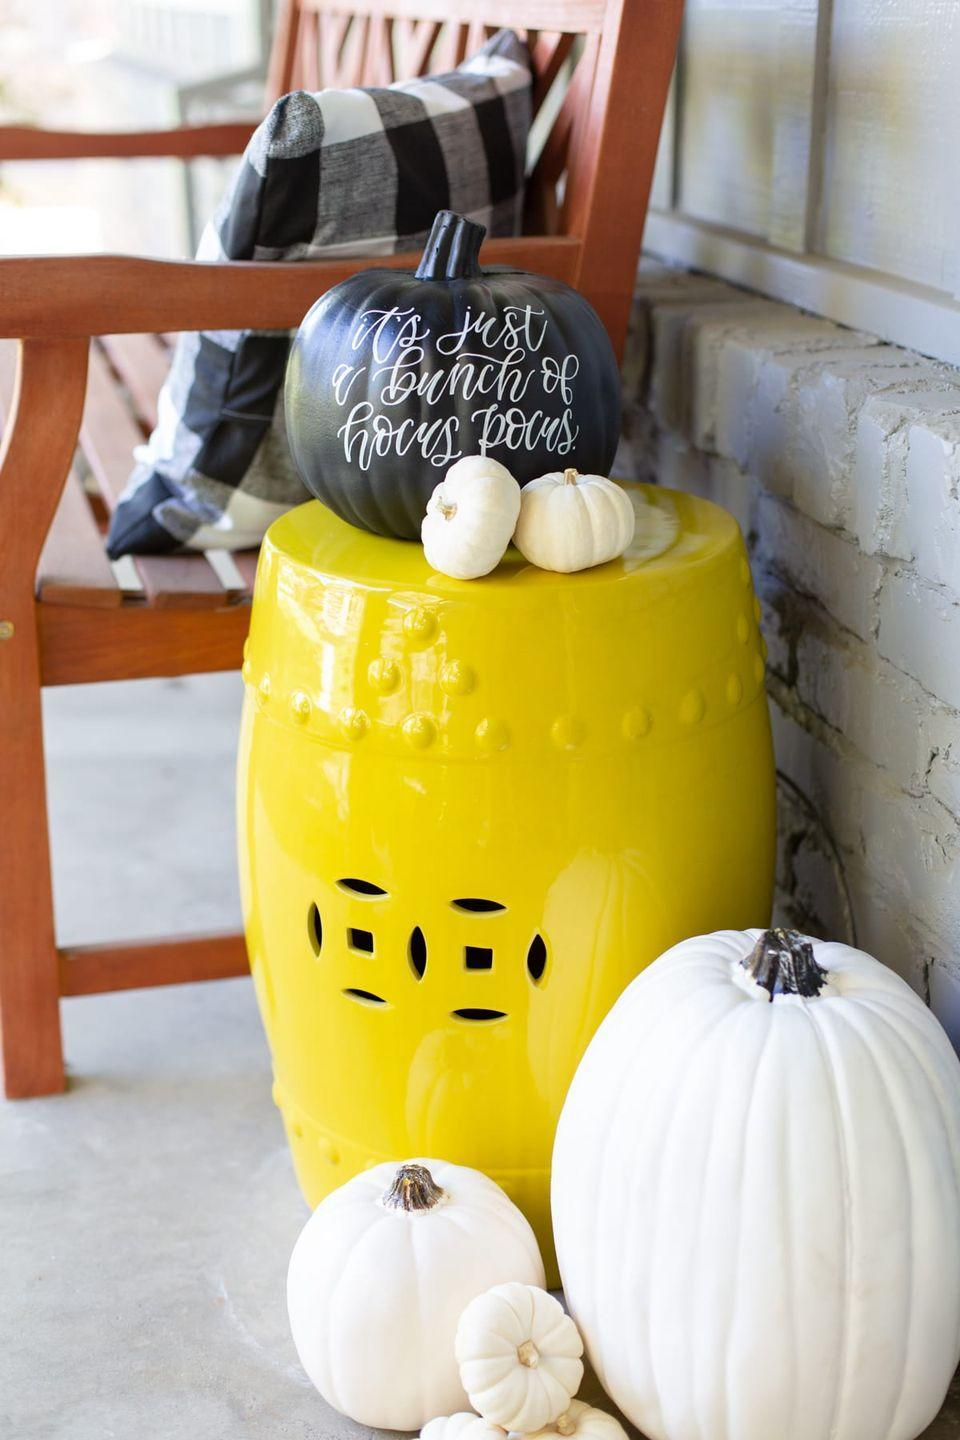 """<p>A simple black and white color palette helps more seasonal items, like pumpkins, go the distance from August through November. </p><p><a class=""""link rapid-noclick-resp"""" href=""""https://lovelyindeed.com/modern-black-and-white-halloween-decor/"""" rel=""""nofollow noopener"""" target=""""_blank"""" data-ylk=""""slk:GET TUTORIAL"""">GET TUTORIAL</a></p>"""